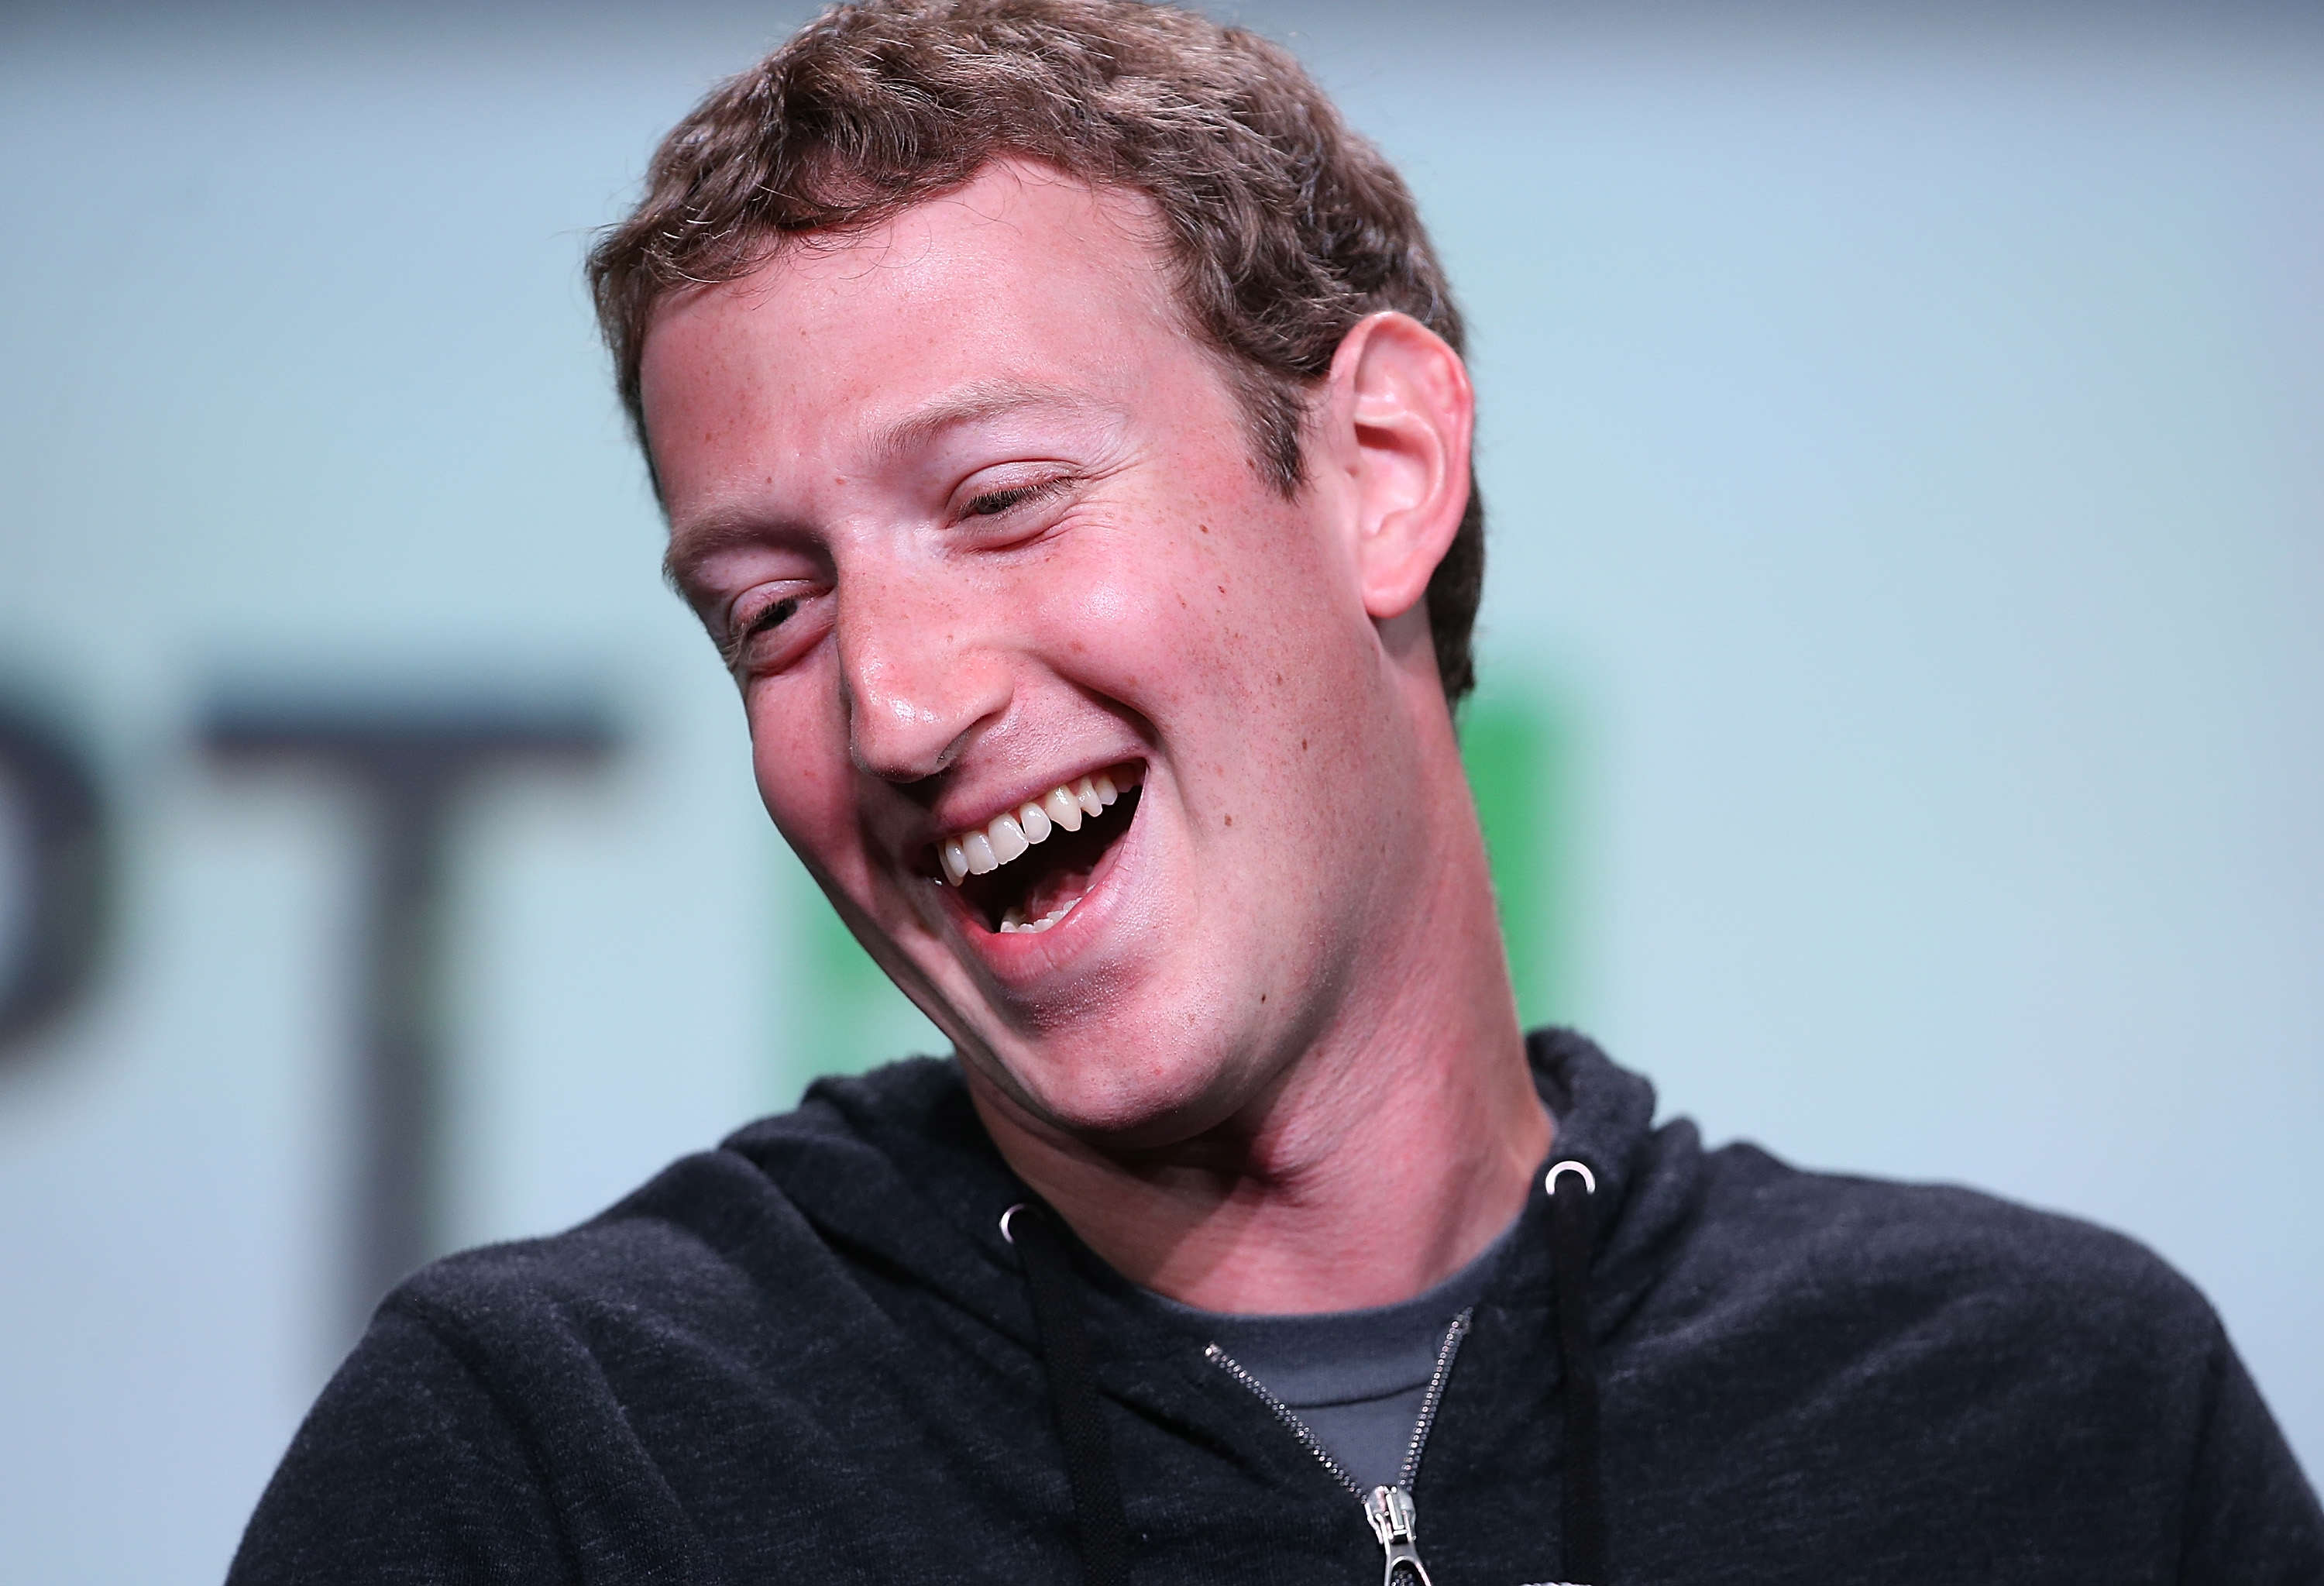 Mark Zuckerberg Just Earned Insane Amount Of Money In One Hour GettyImages 180336940